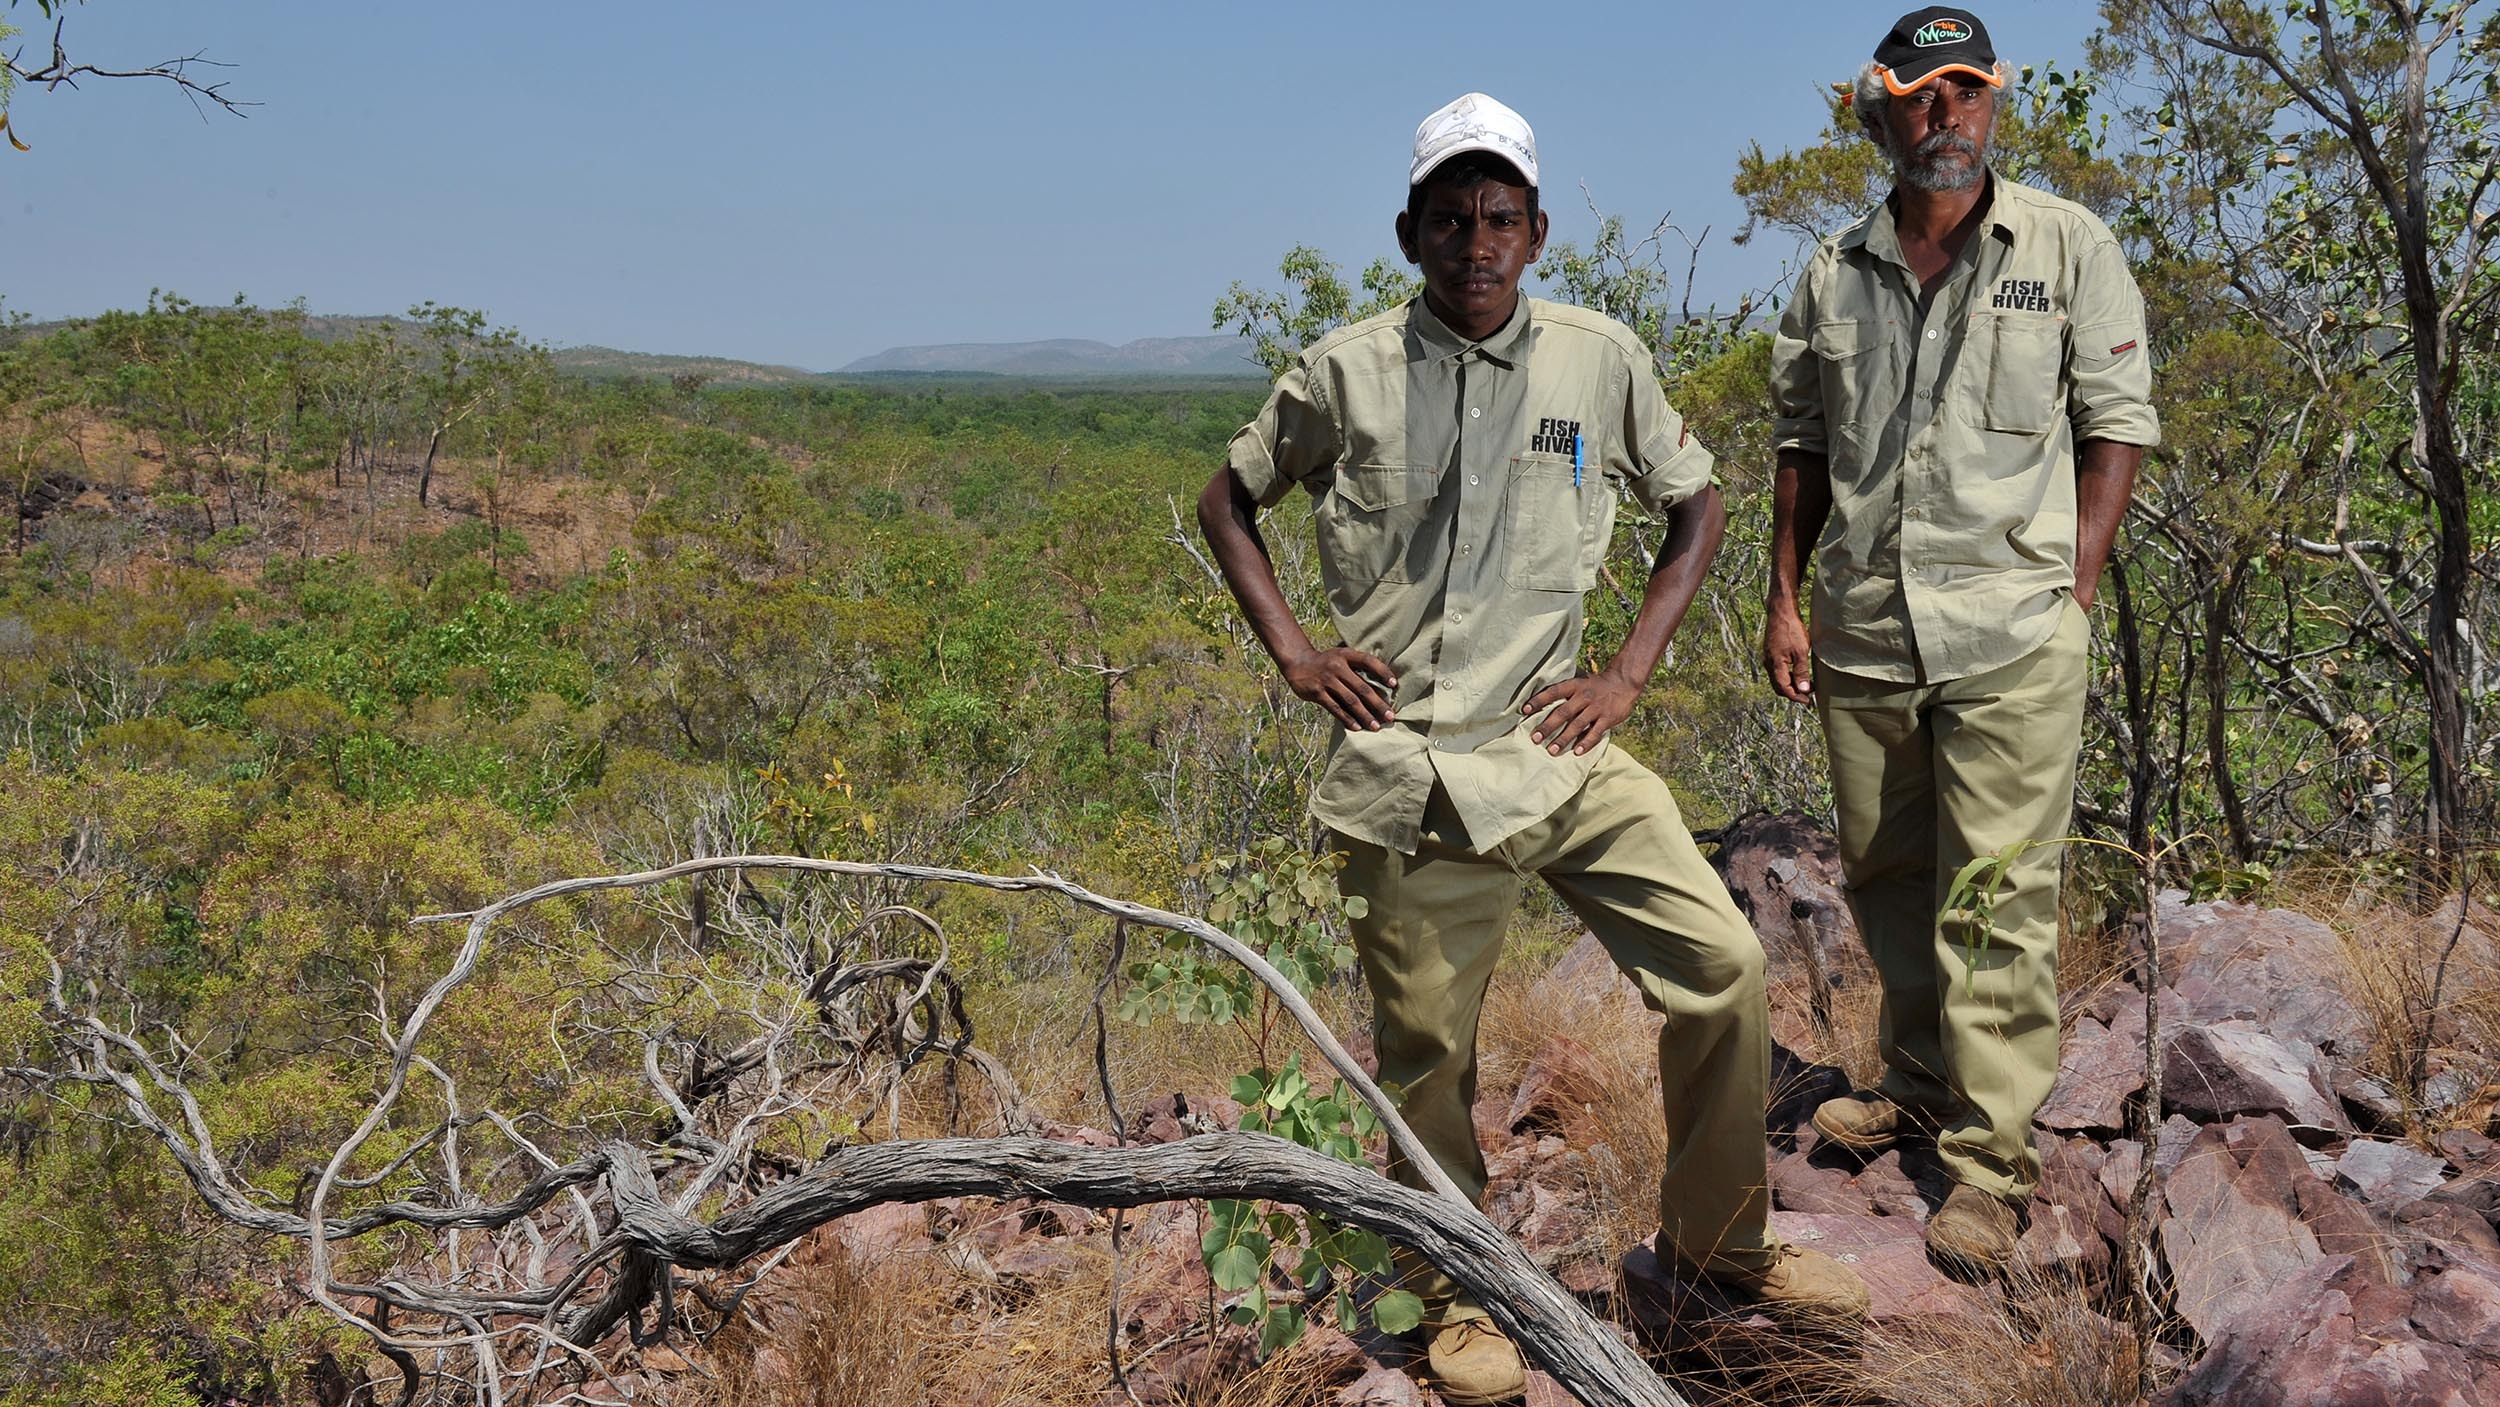 Fish River Rangers Desmond Daly, left, and Jeff Long help manage the 178,000-hectare Fish River Station in the Northern Territory for conservation and cultural heritage. The former cattle property was purchased through a ground-breaking partnership between the Indigenous Land Corporation, The Nature Conservancy, The Pew Charitable Trusts and the Australian Government.